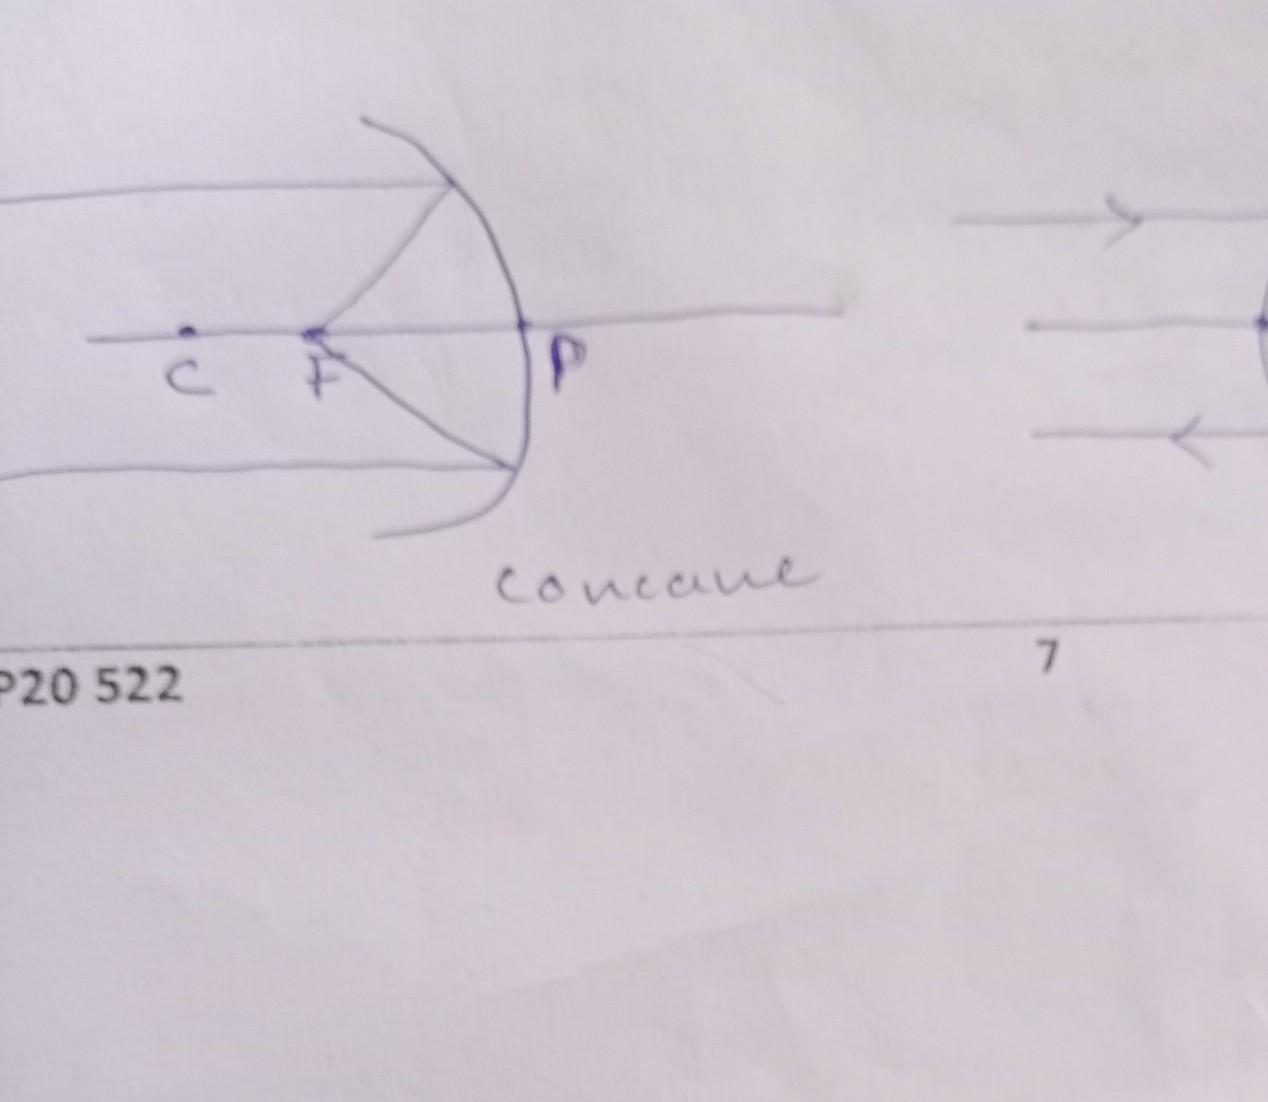 31 With The Help Of A Ray Diagram State The Meaning Of Refraction Of Light Statelaw Of Refraction Brainly In